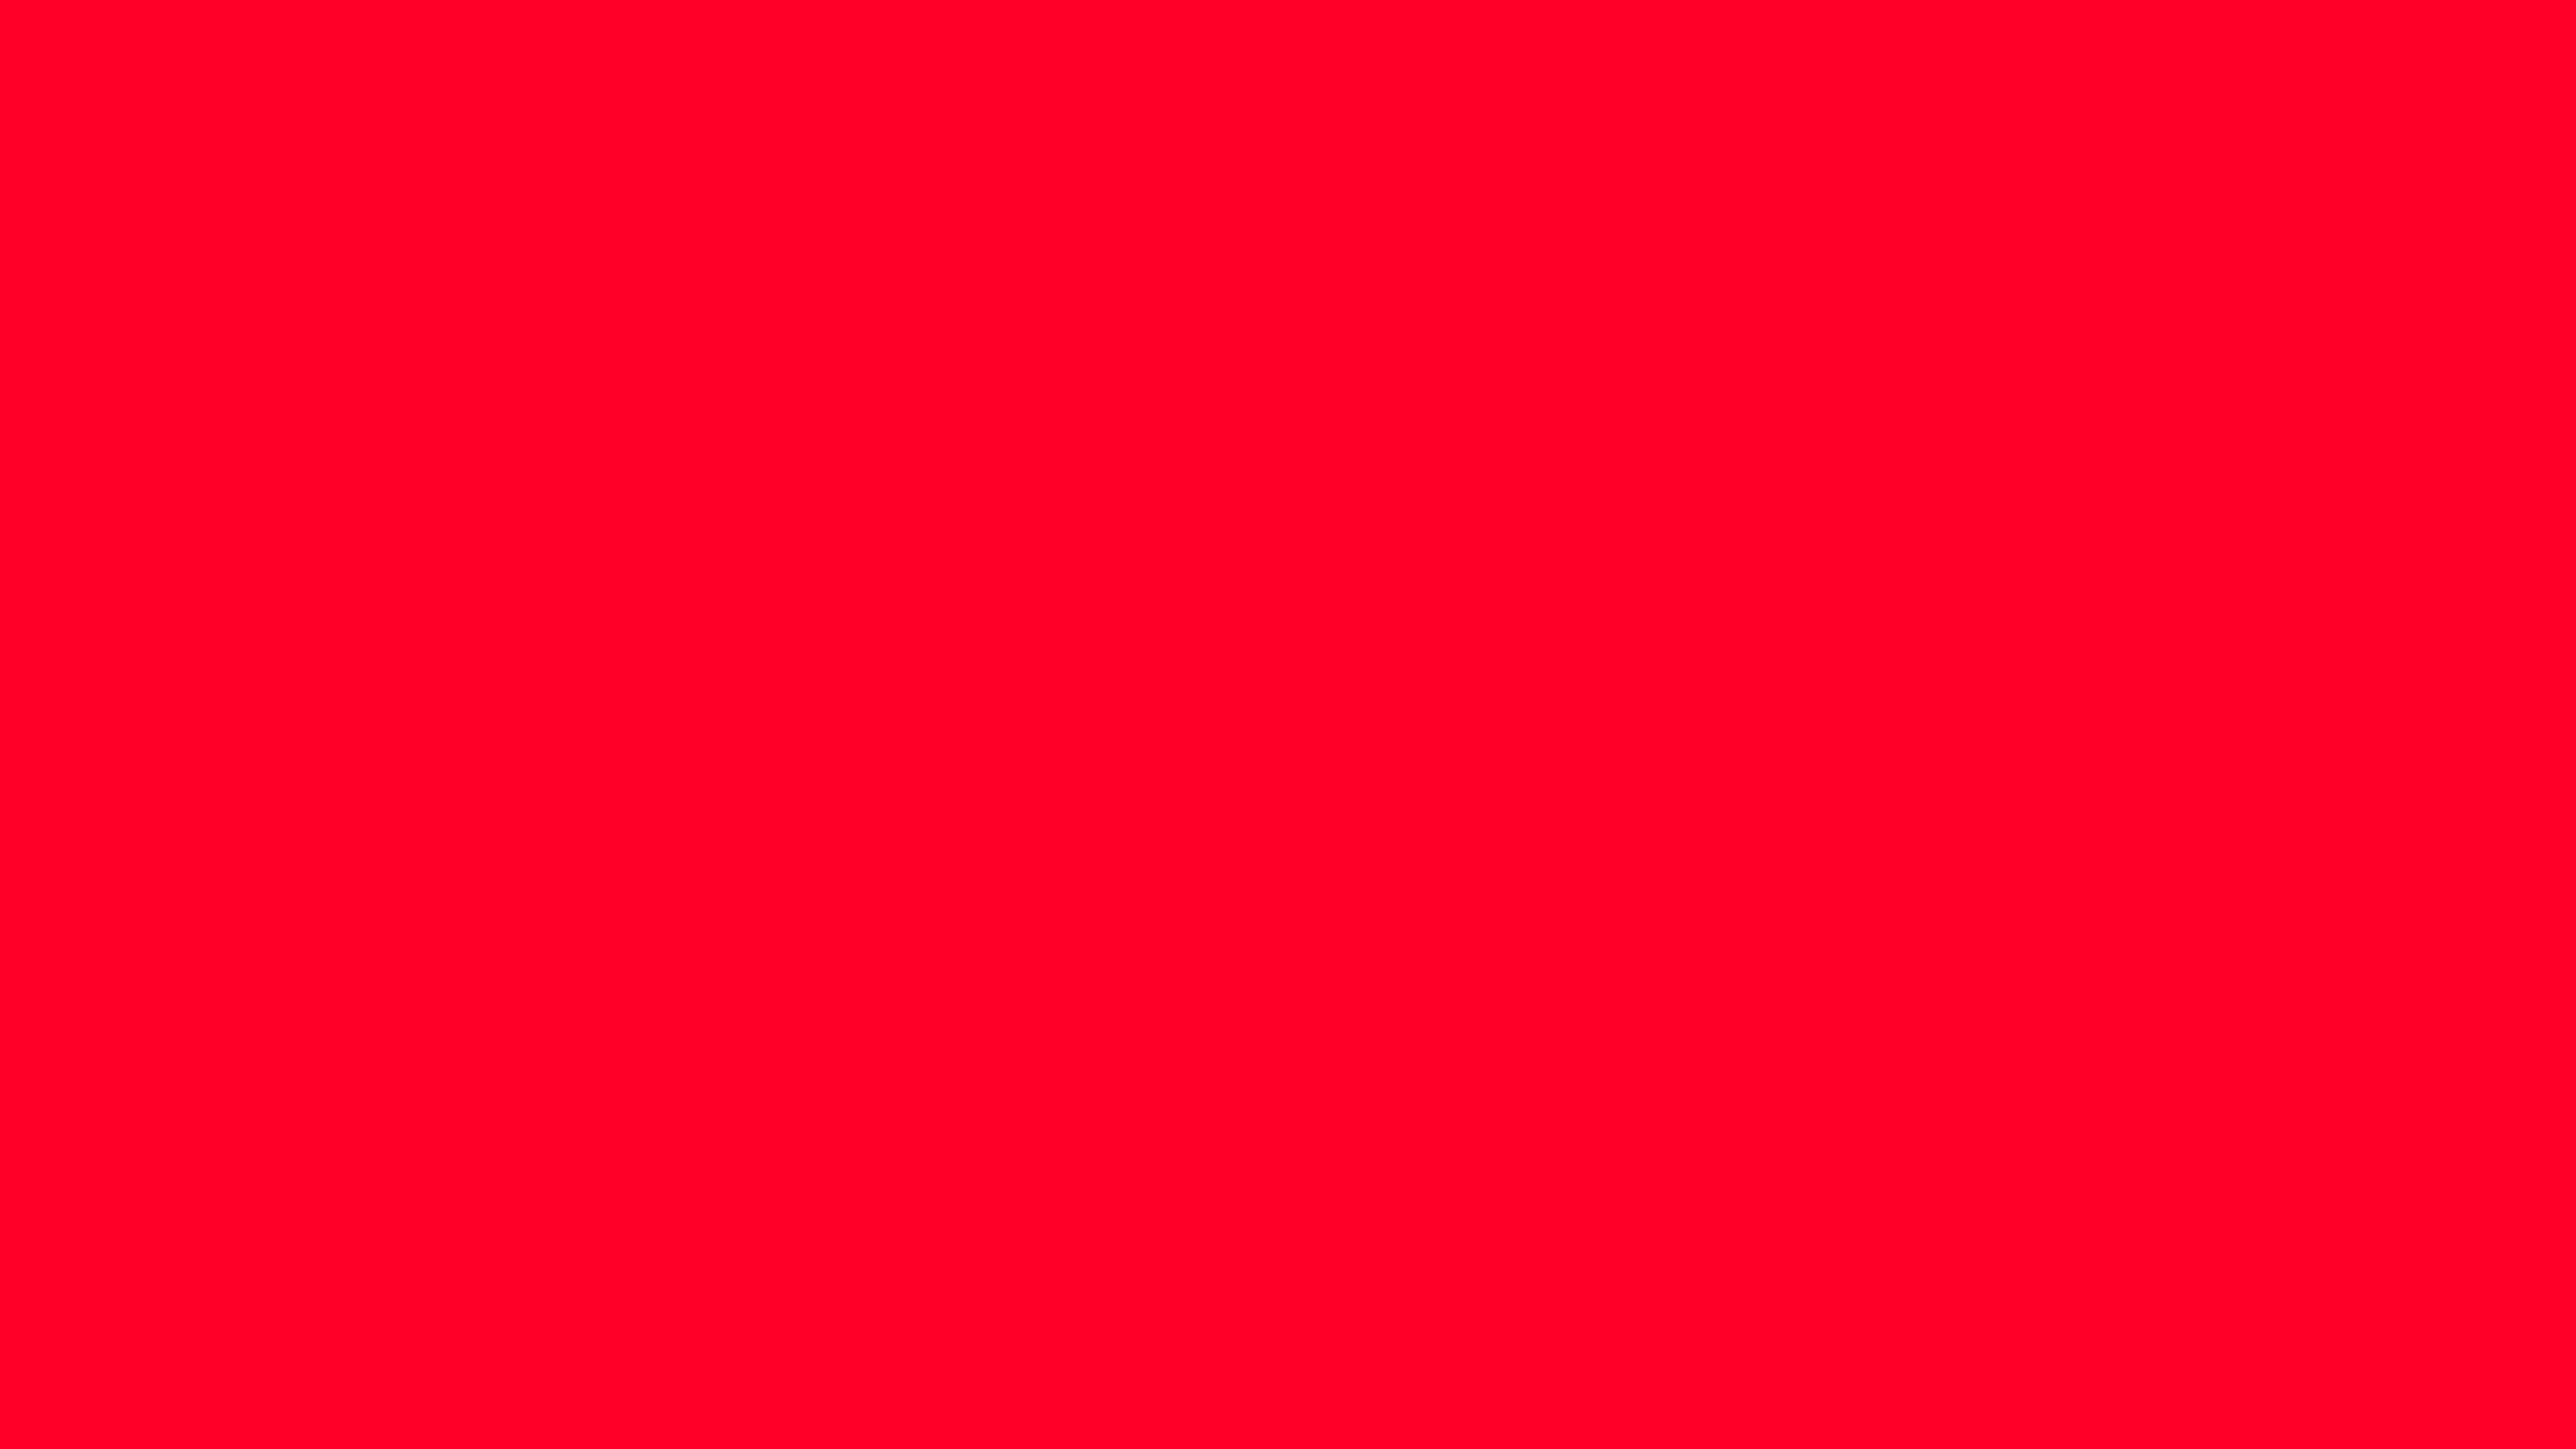 7680x4320 Ruddy Solid Color Background